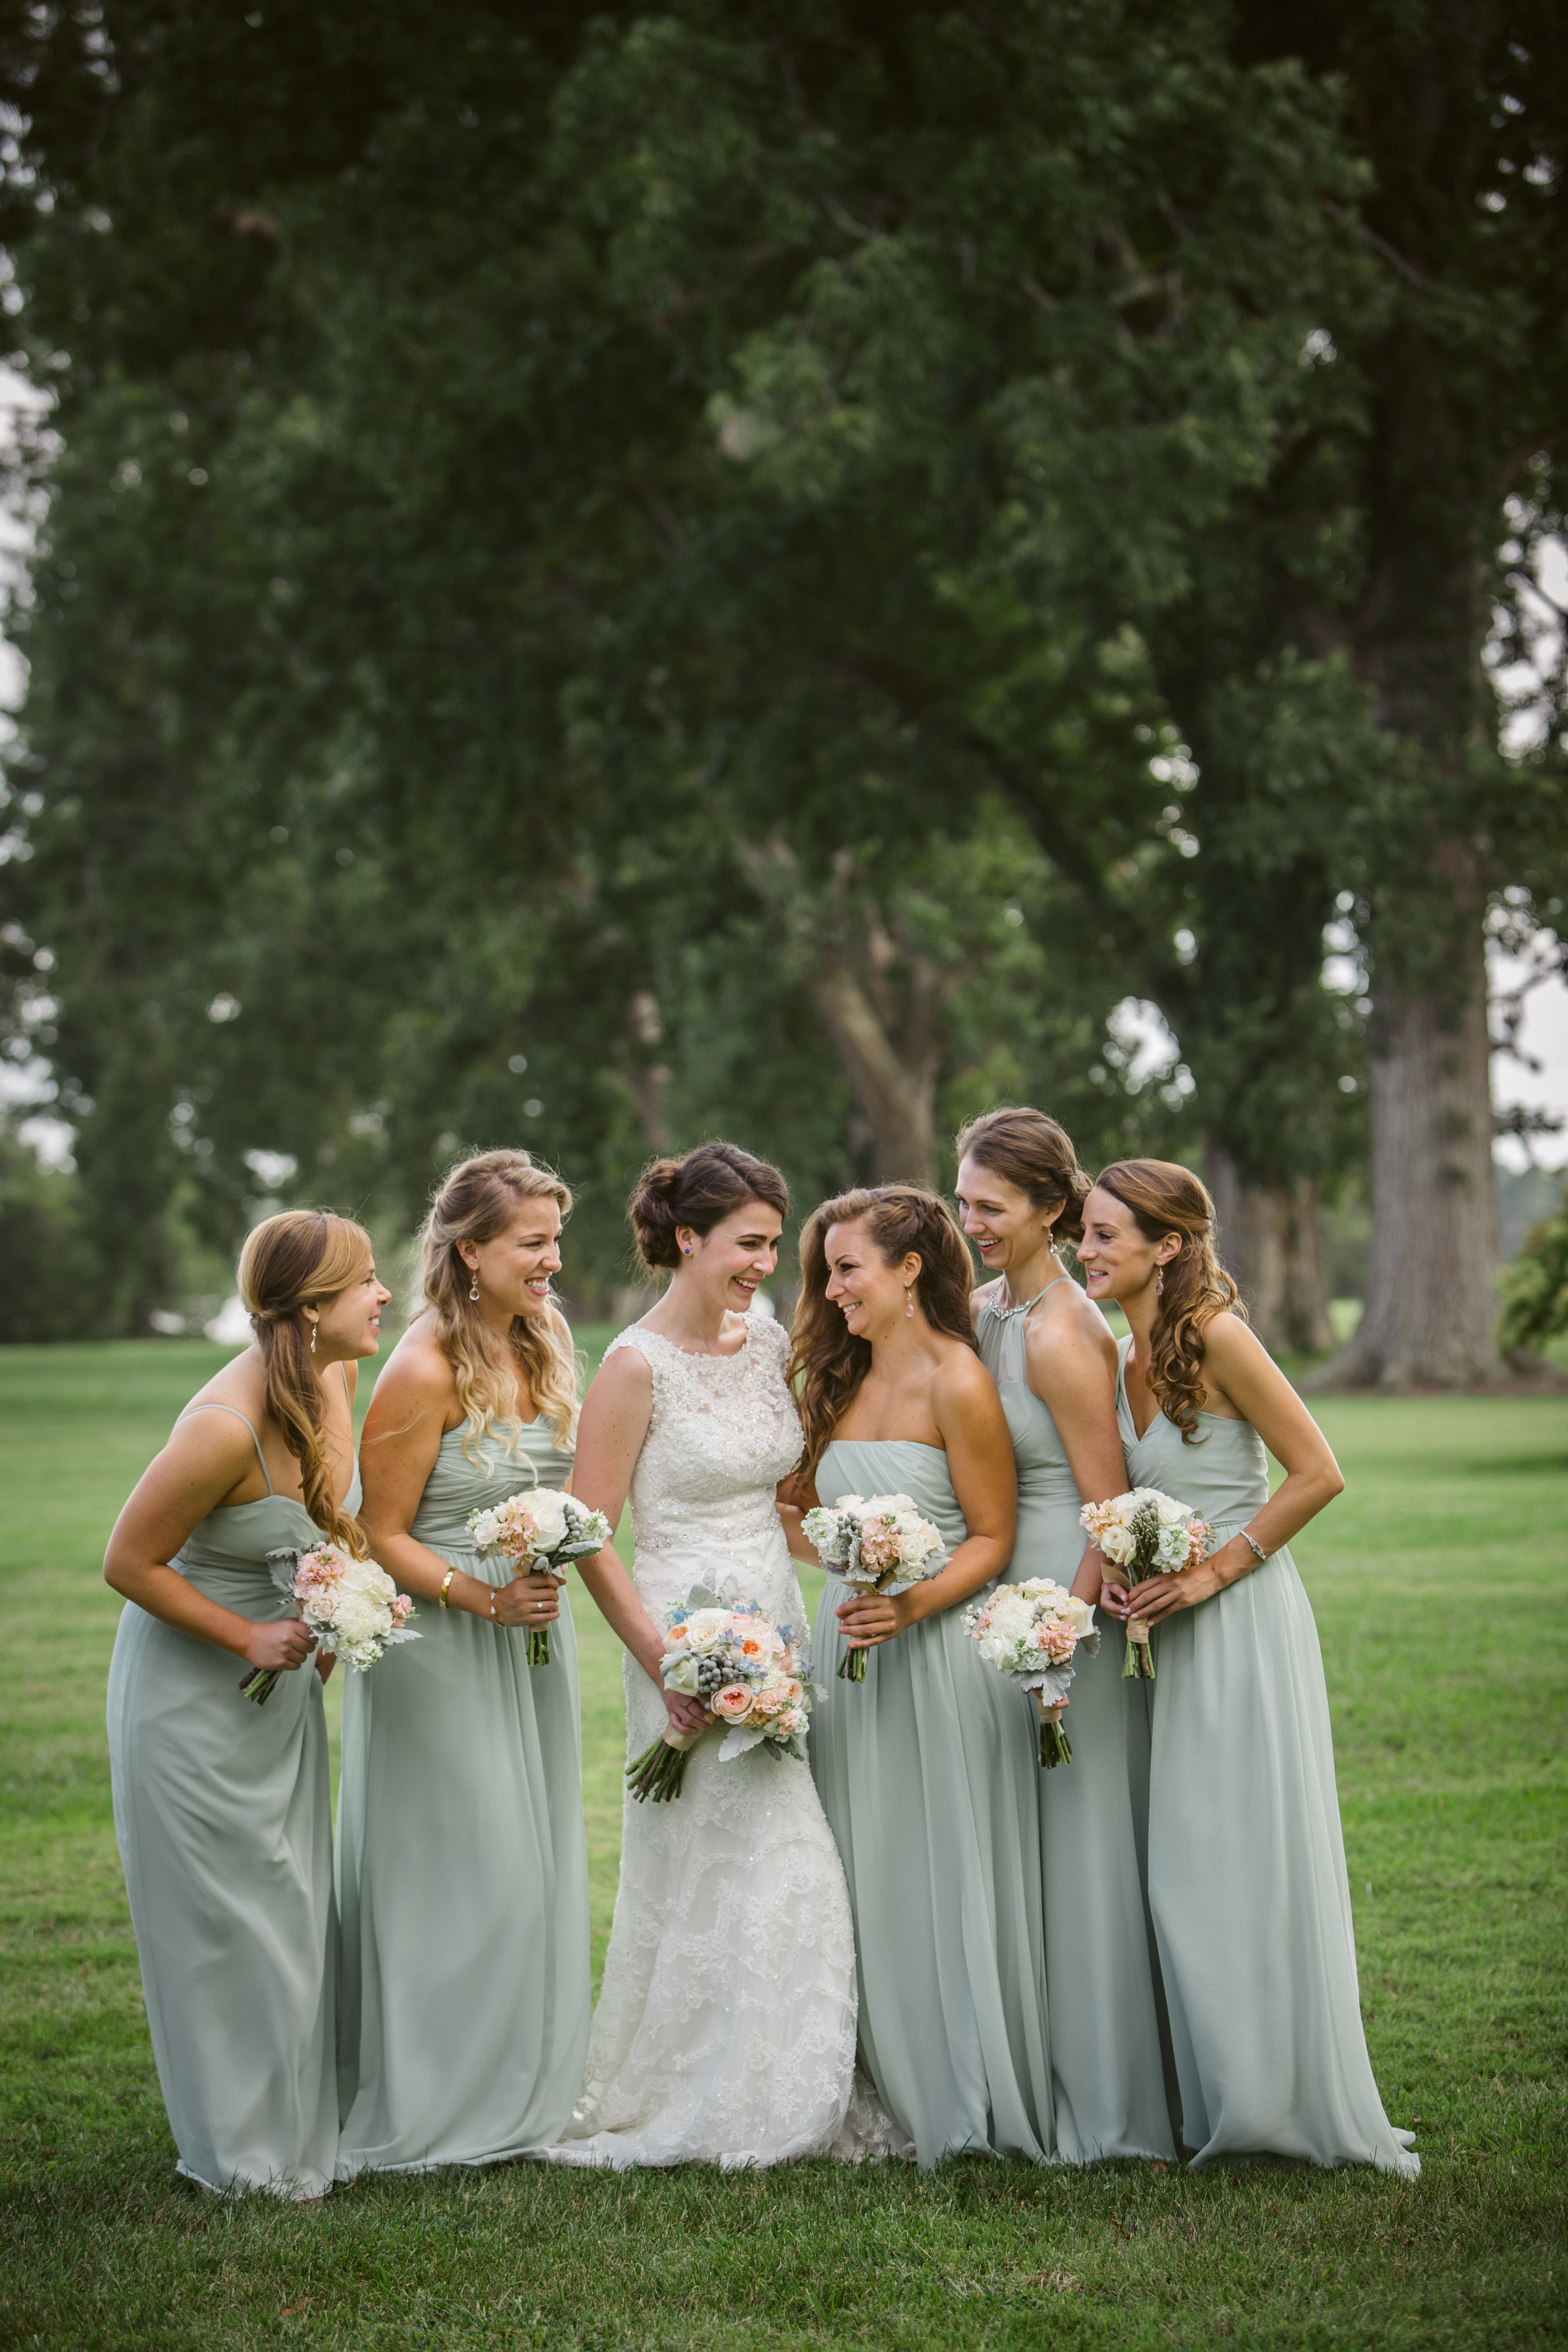 Alfred angelo sage bridesmaid dresses sage sea foam green color the bridesmaids wore alfred angelo sage chiffon bridesmaid dresses in whatever style they wanted for a chic look that matched the wedding colors ombrellifo Choice Image